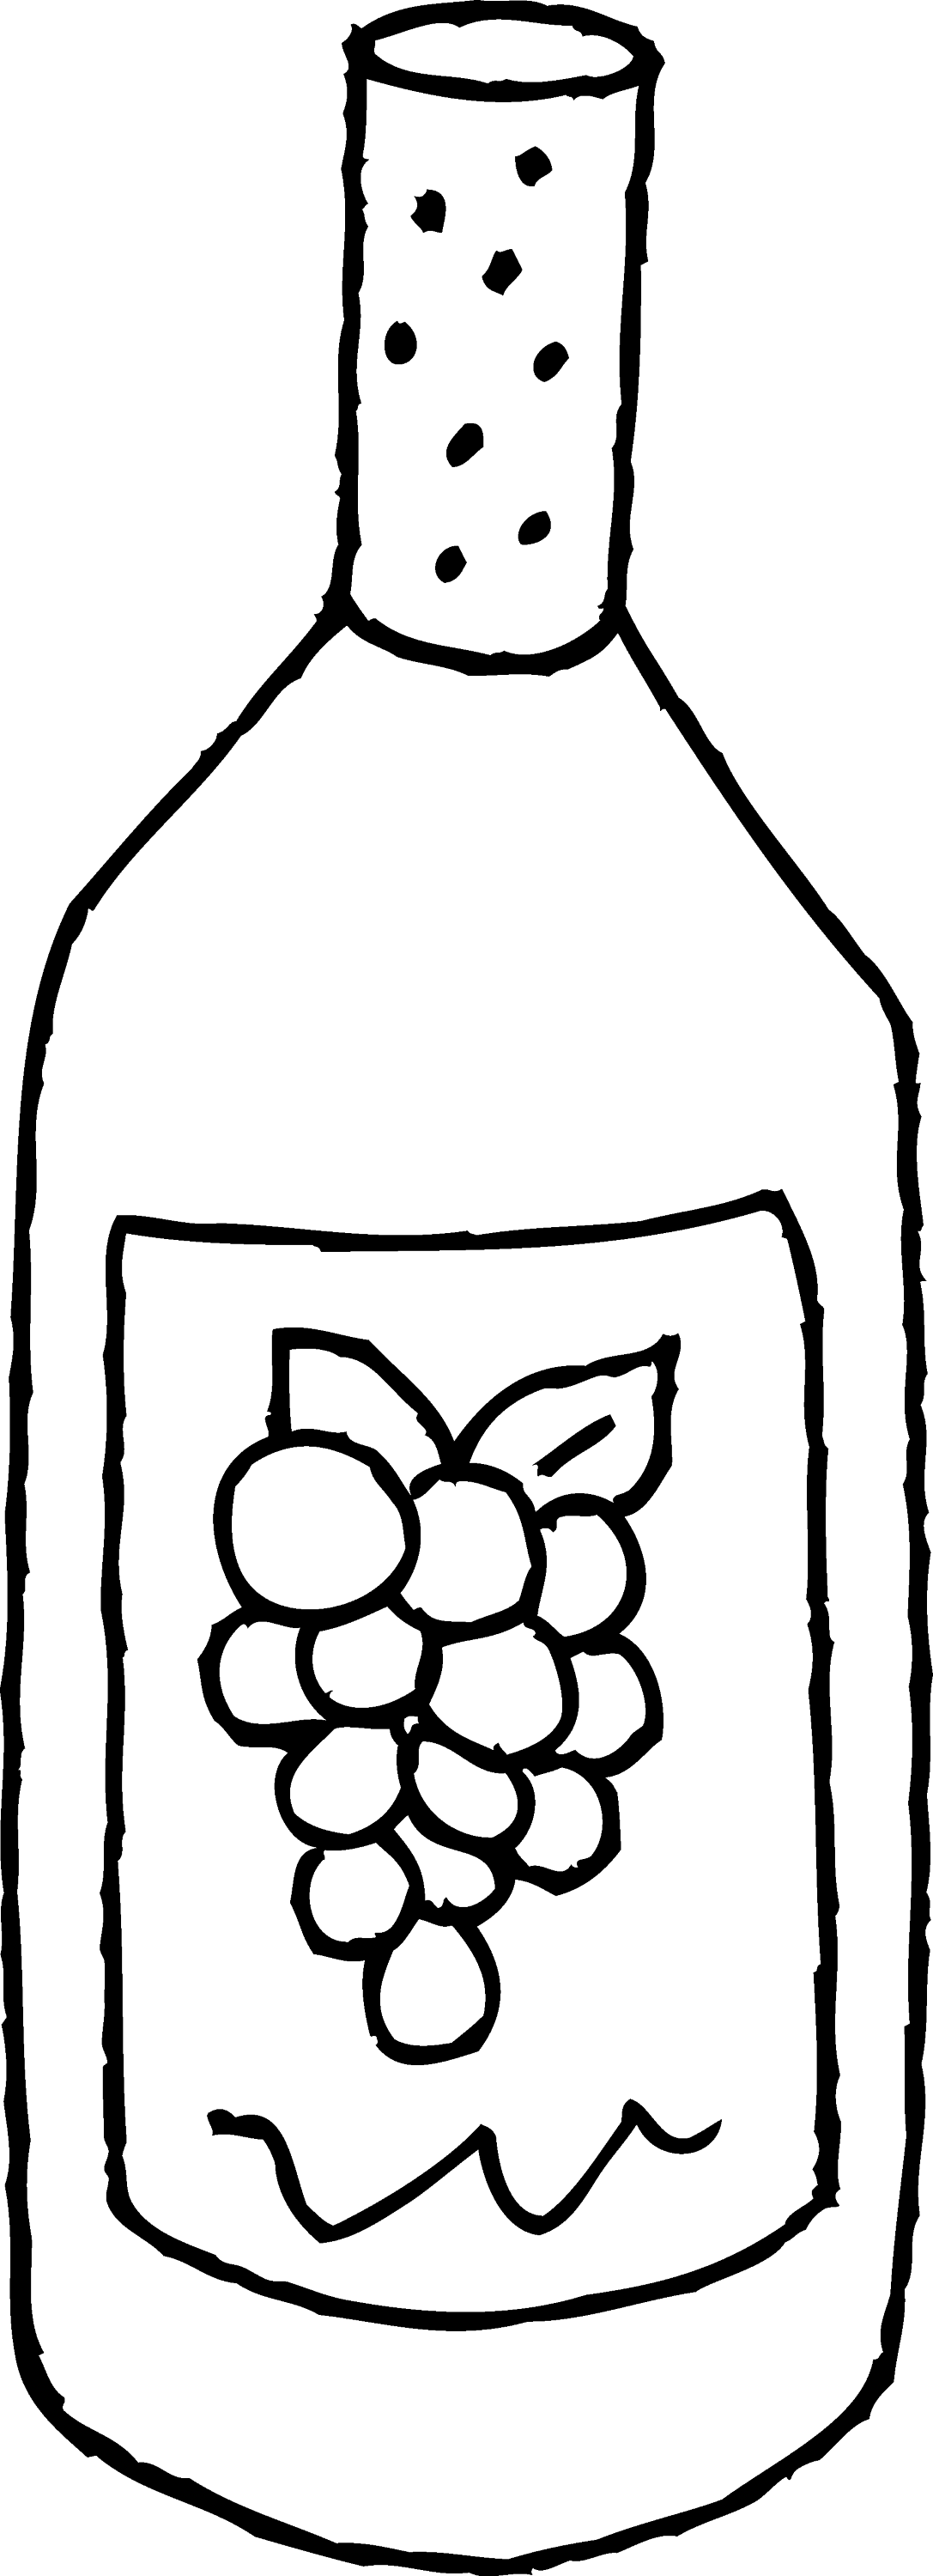 Free picture of a milk bottle coloring pages for How to color wine bottles